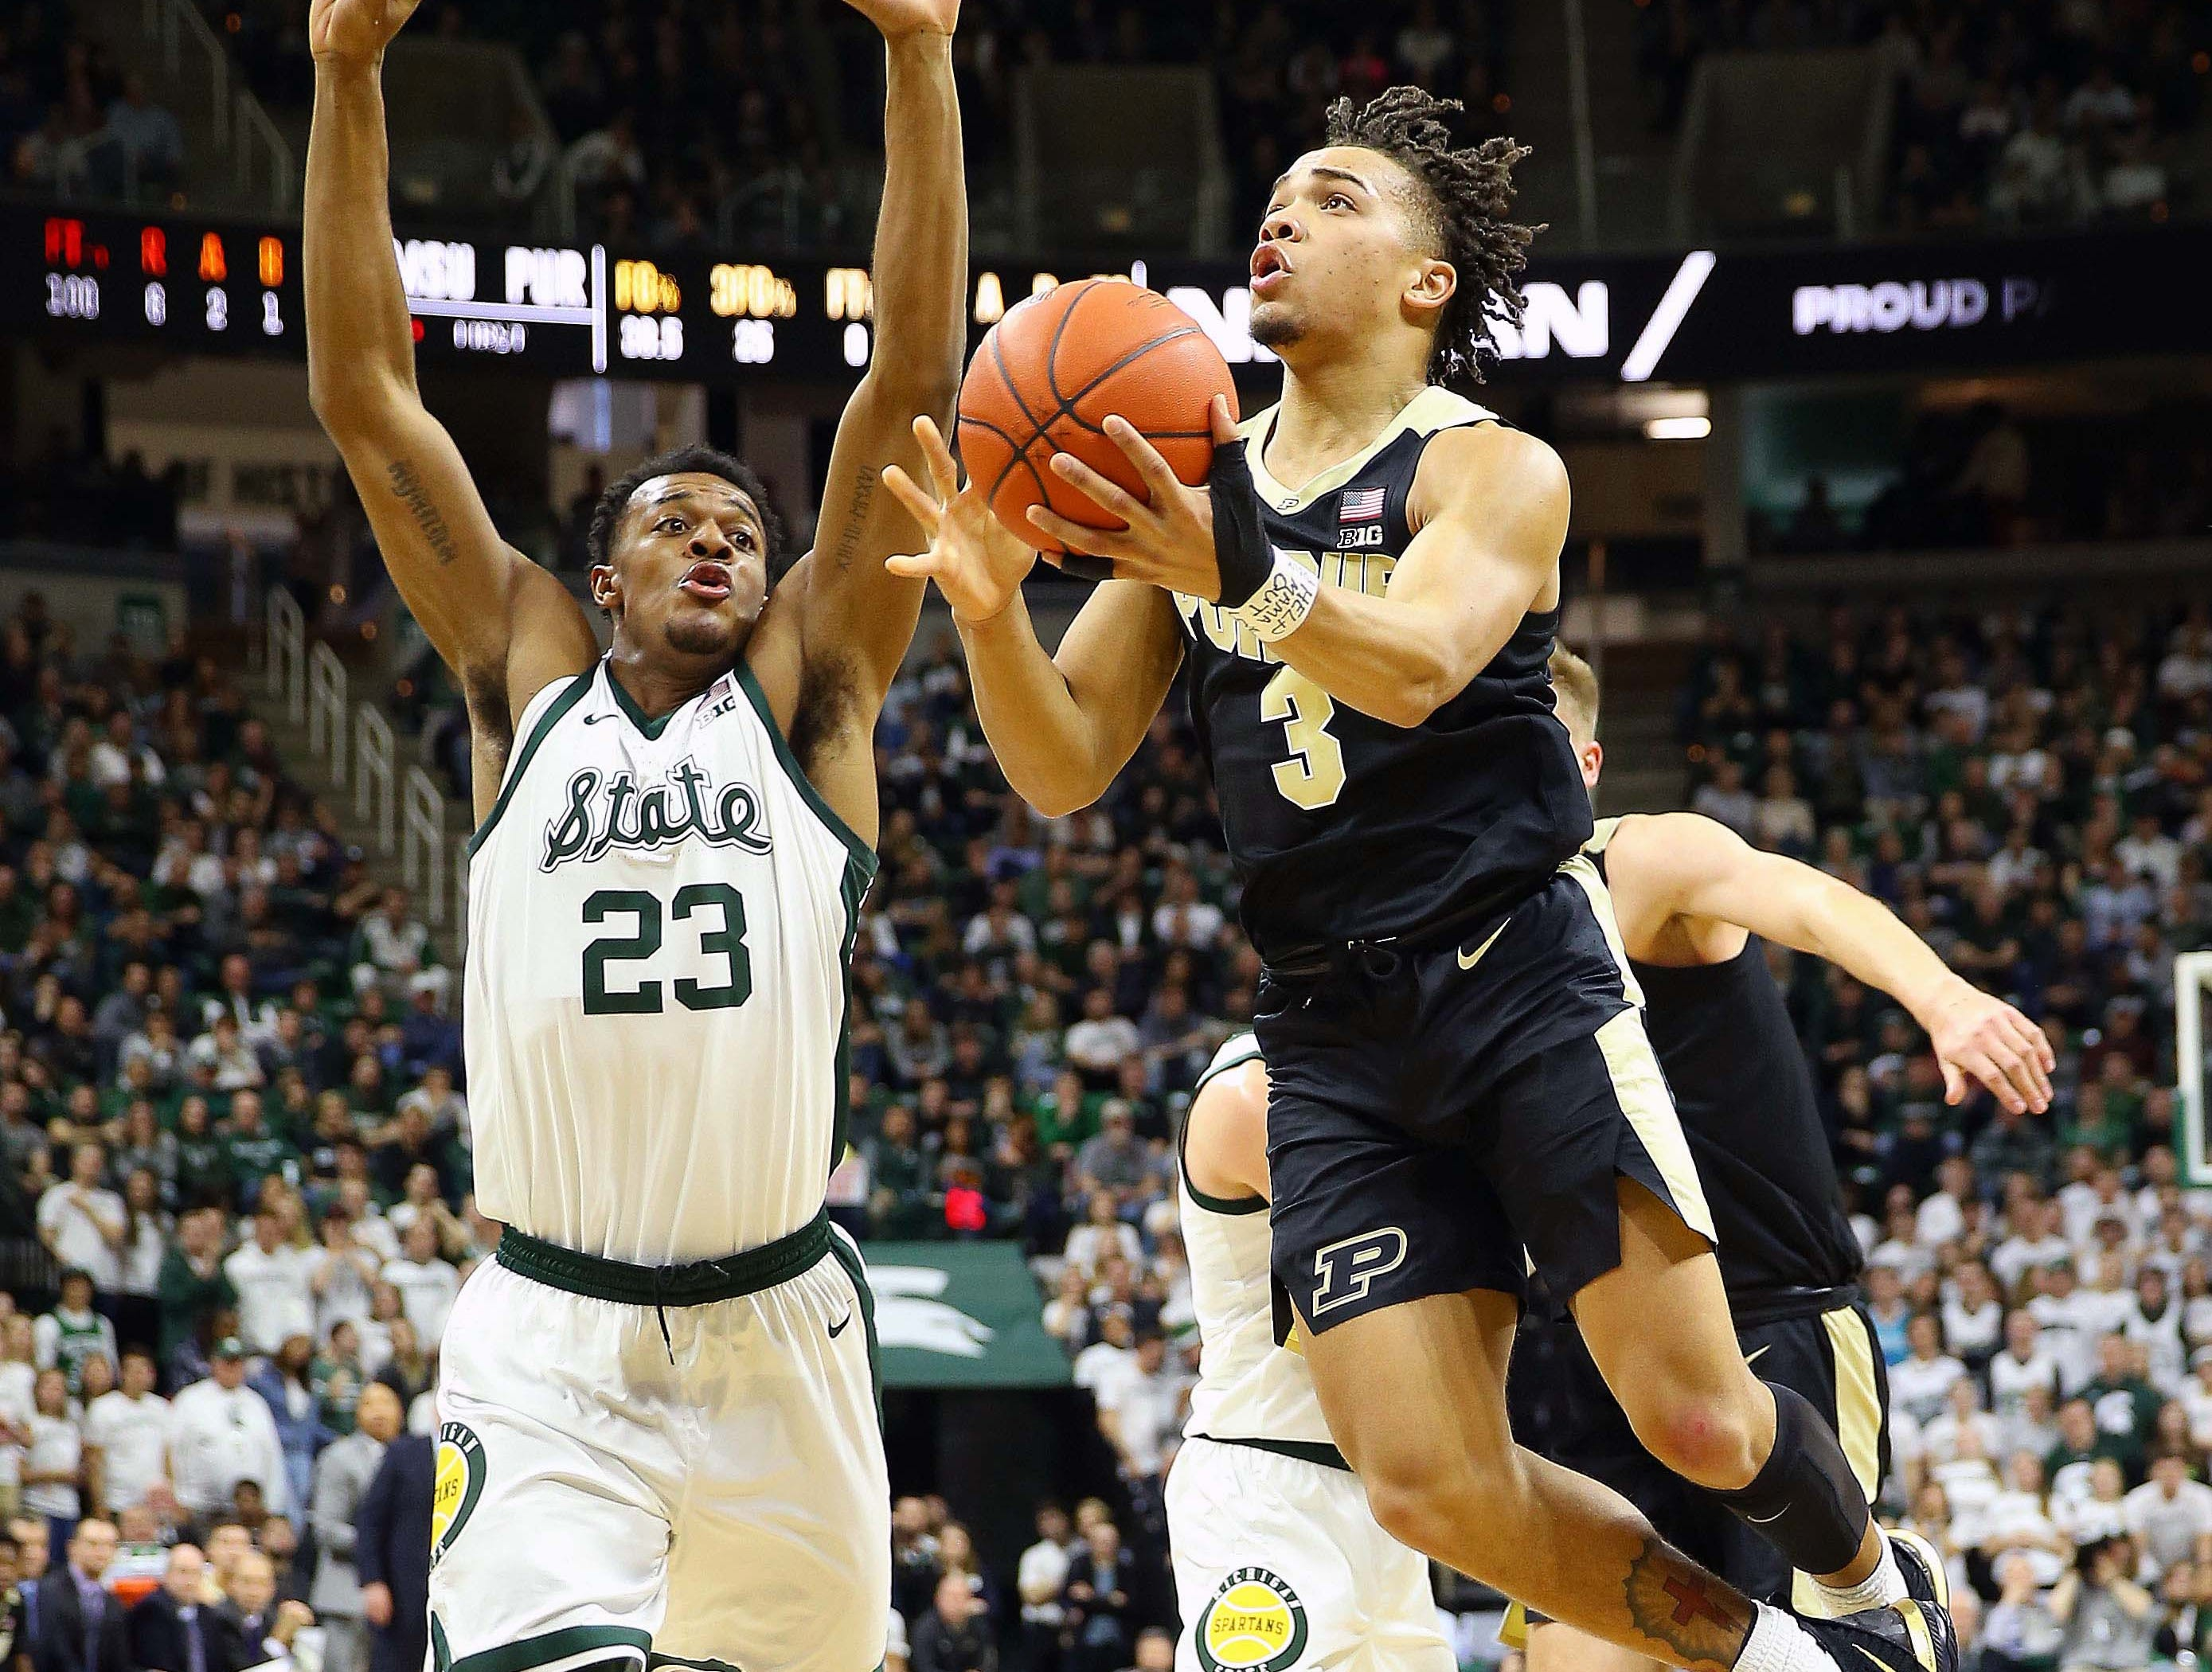 Jan 8, 2019; East Lansing, MI, USA; Purdue Boilermakers guard Carsen Edwards (3) drives the lane in front of Michigan State Spartans forward Xavier Tillman (23) during the first half of a game at the Breslin Center. Mandatory Credit: Mike Carter-USA TODAY Sports